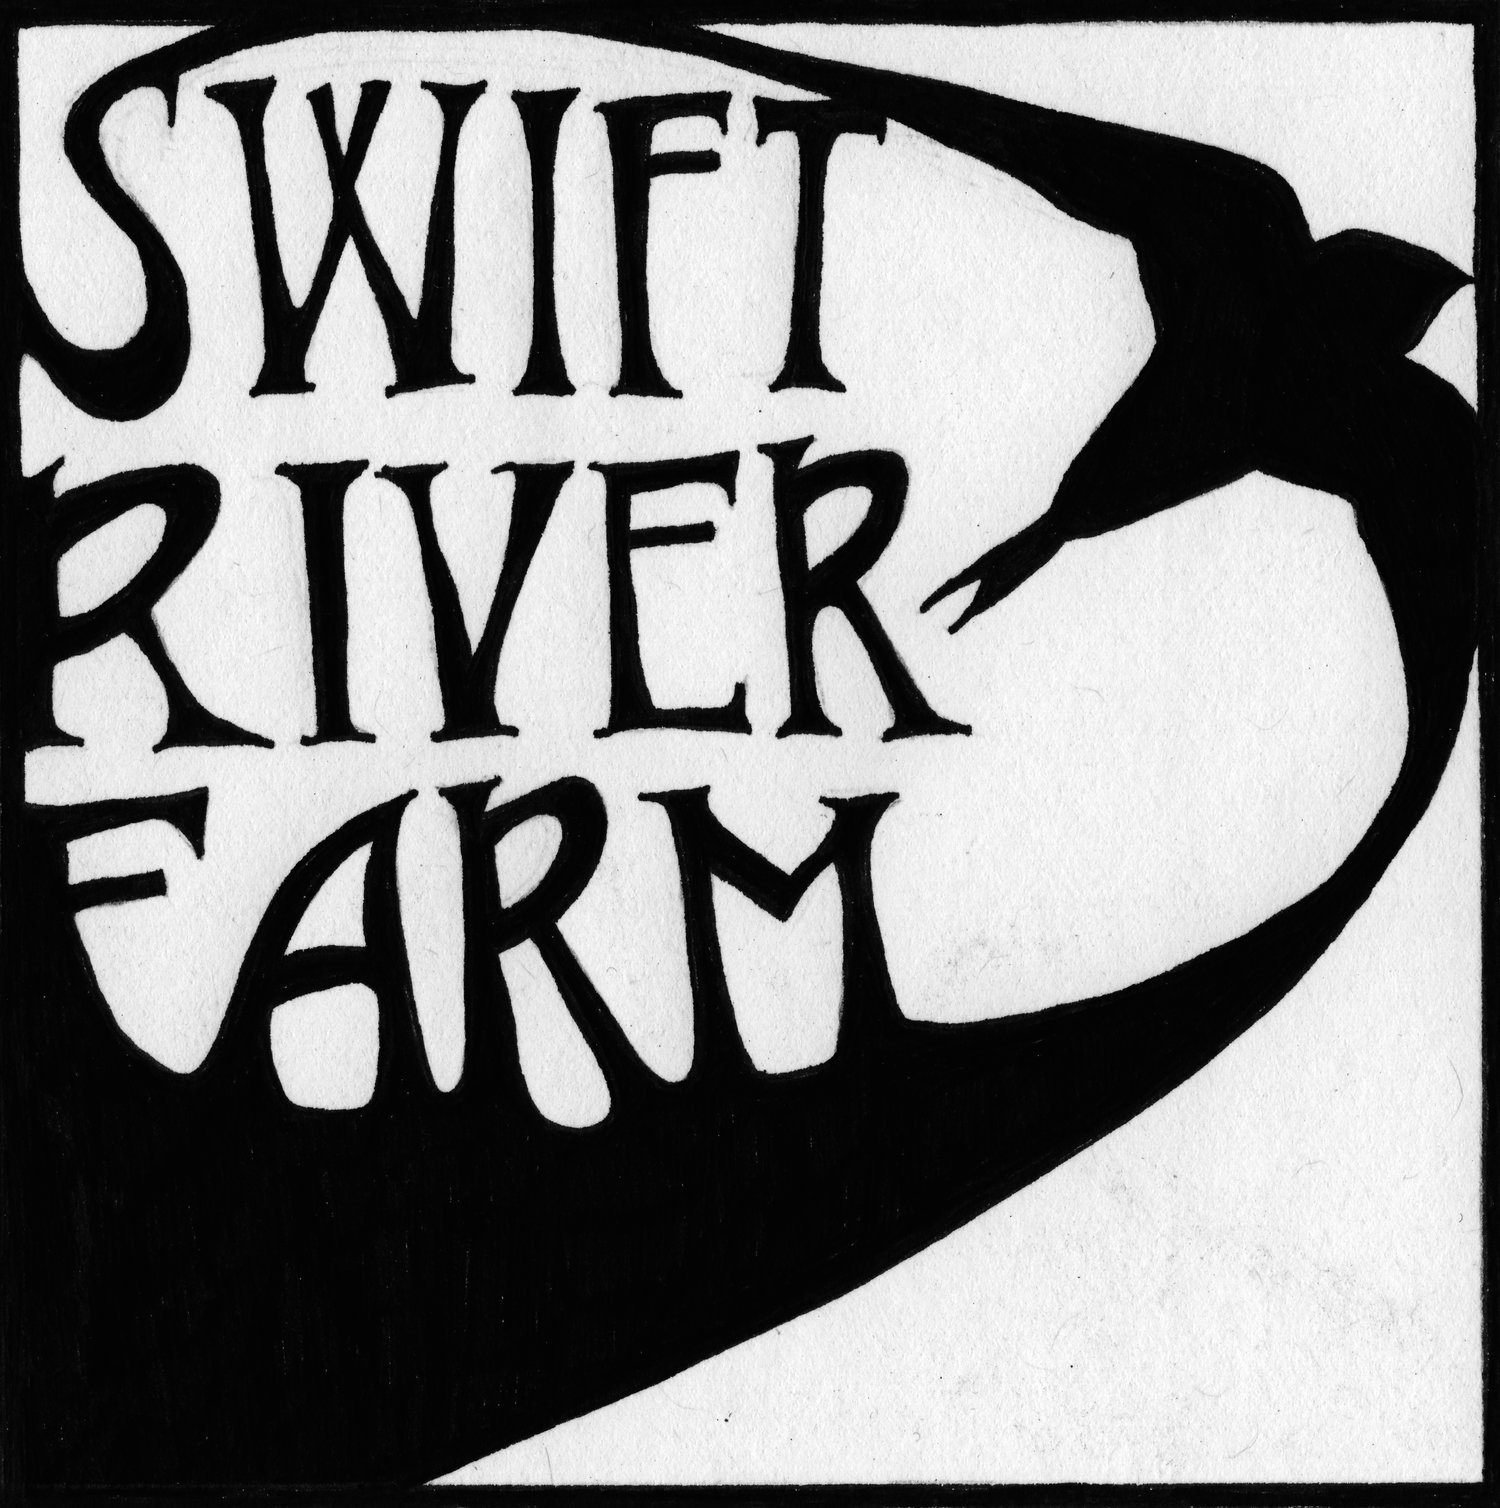 Swift River Farm